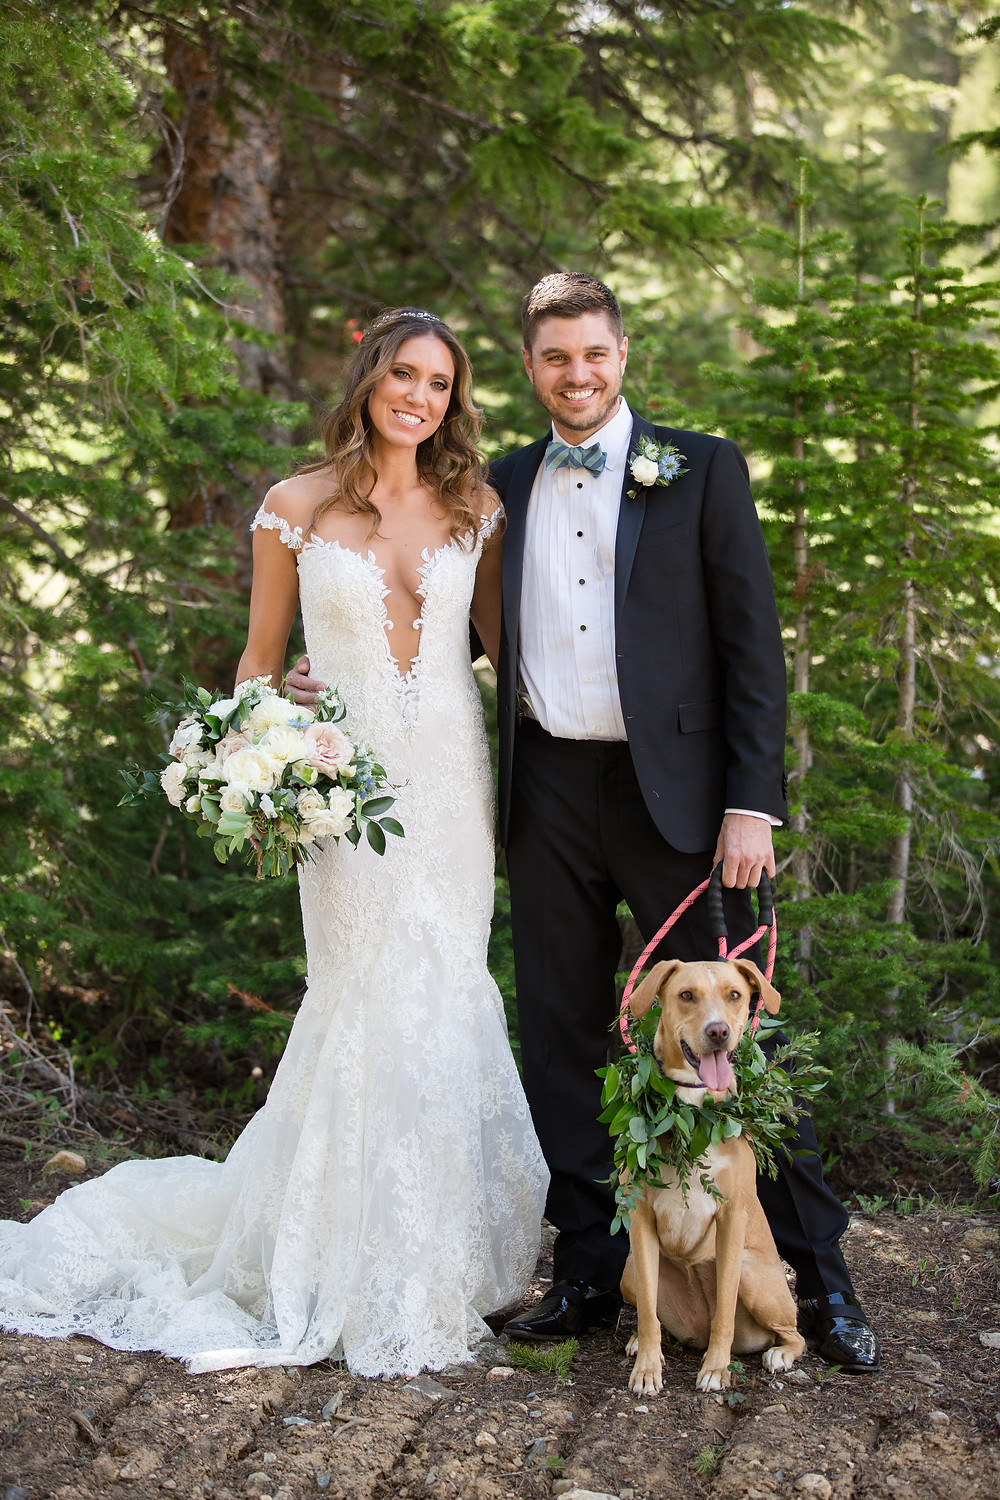 Ten Mile Station Wedding - How to Include your dog in your wedding